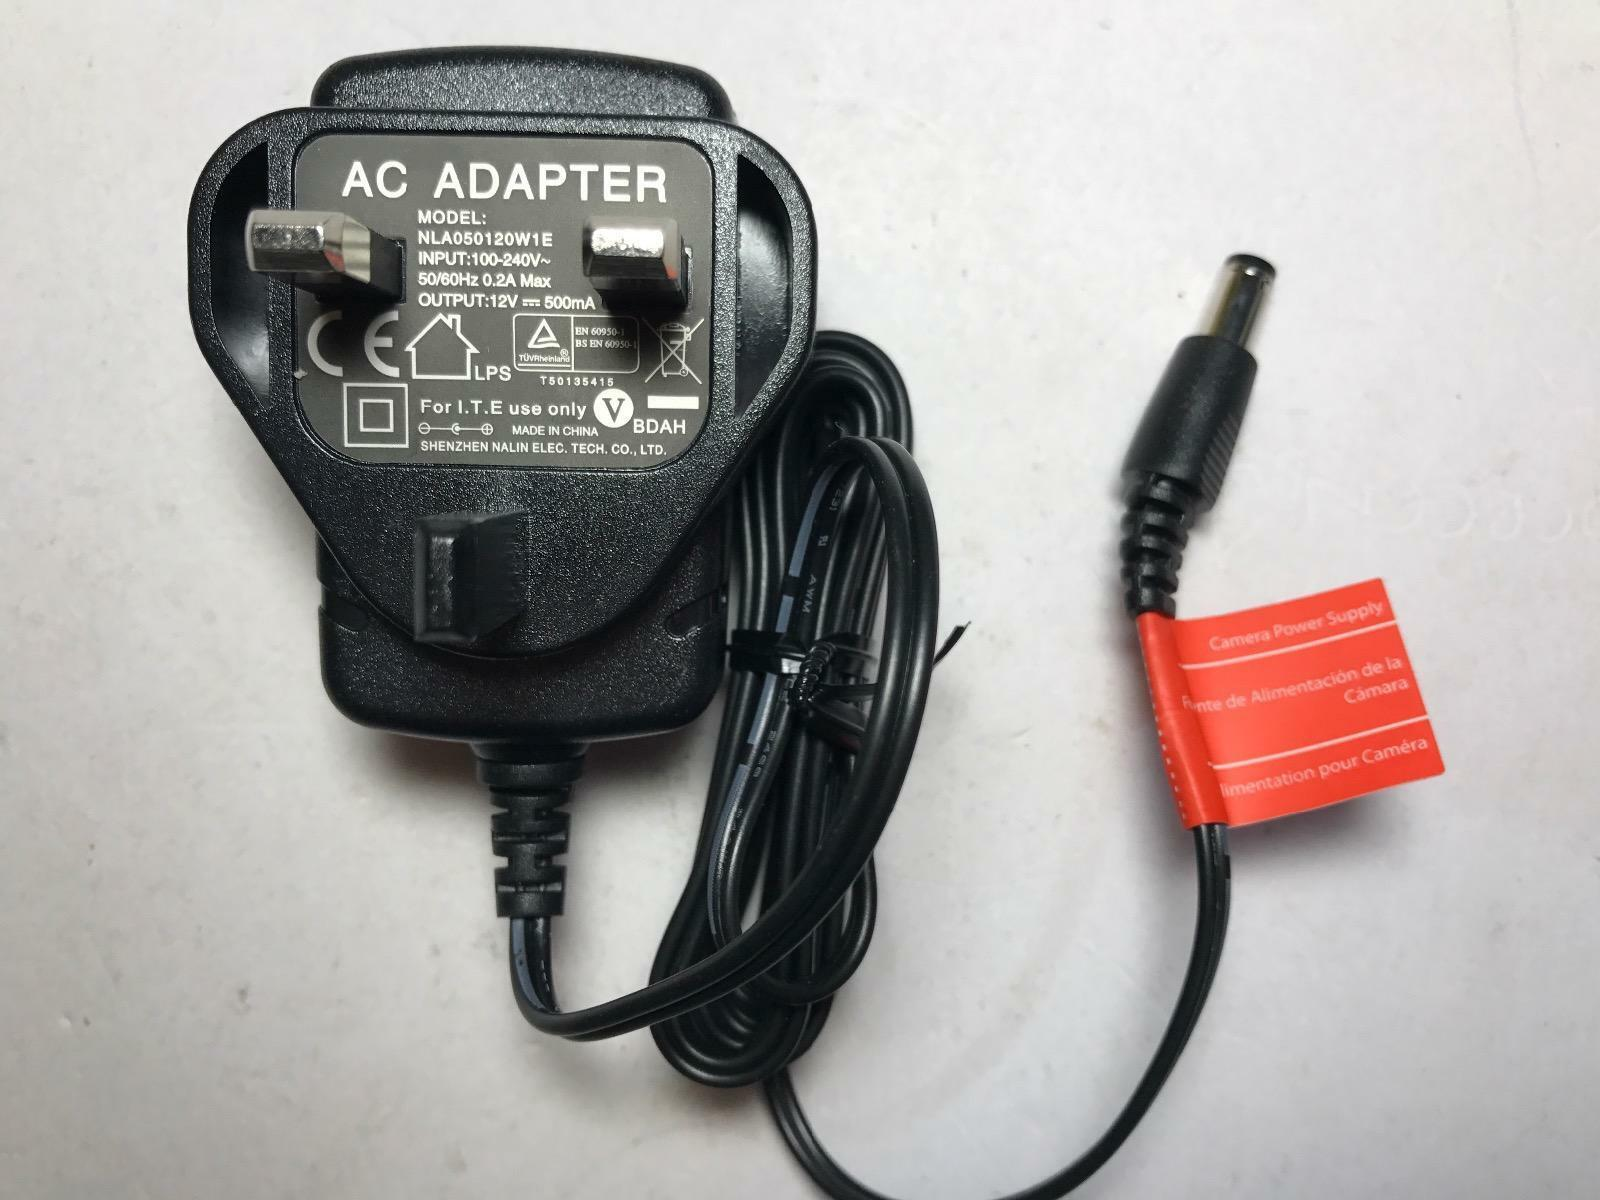 Replacement for 12V 400mA Switching Power Supply S008ACM1200040 UK Plug